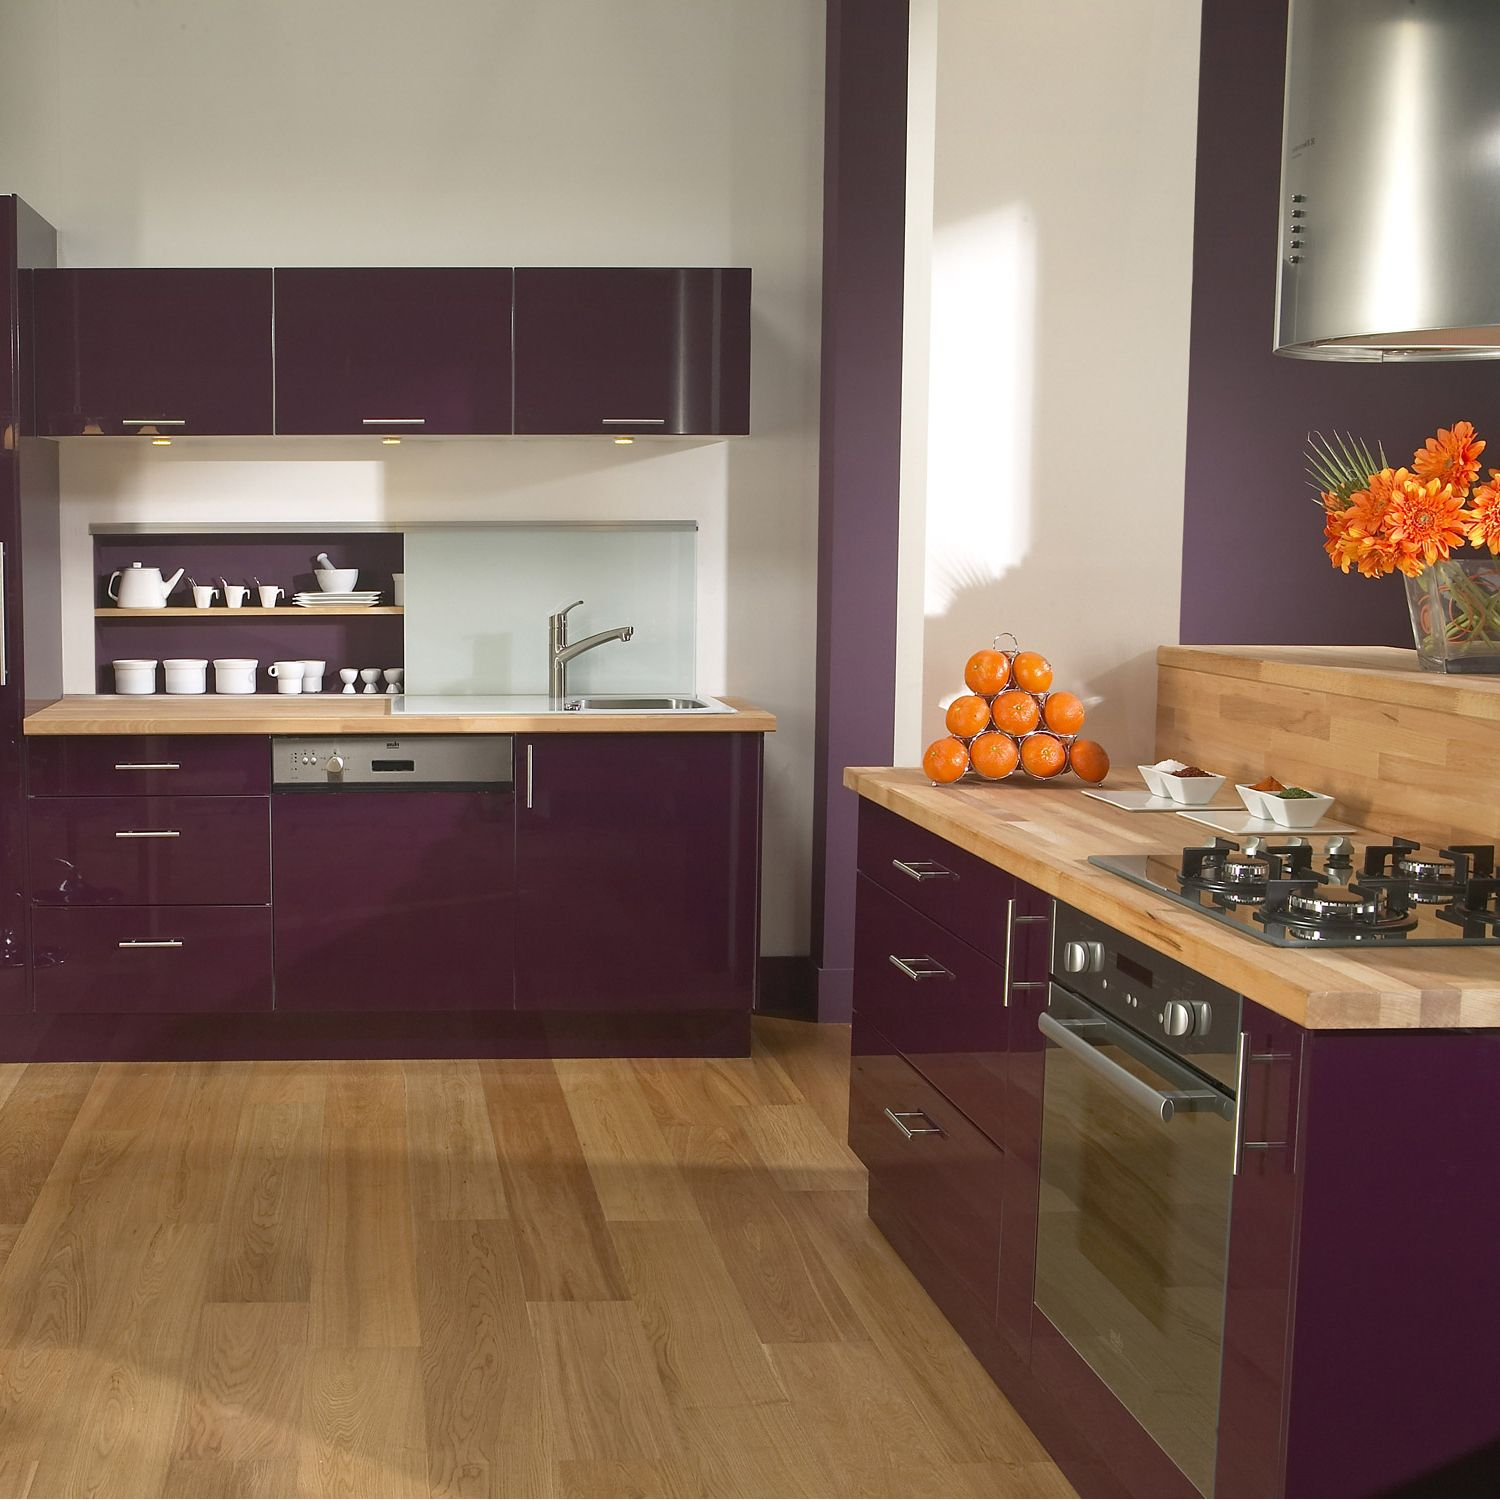 meuble de cuisine delinia composition type aubergine violet aubergine n 1500 1500. Black Bedroom Furniture Sets. Home Design Ideas